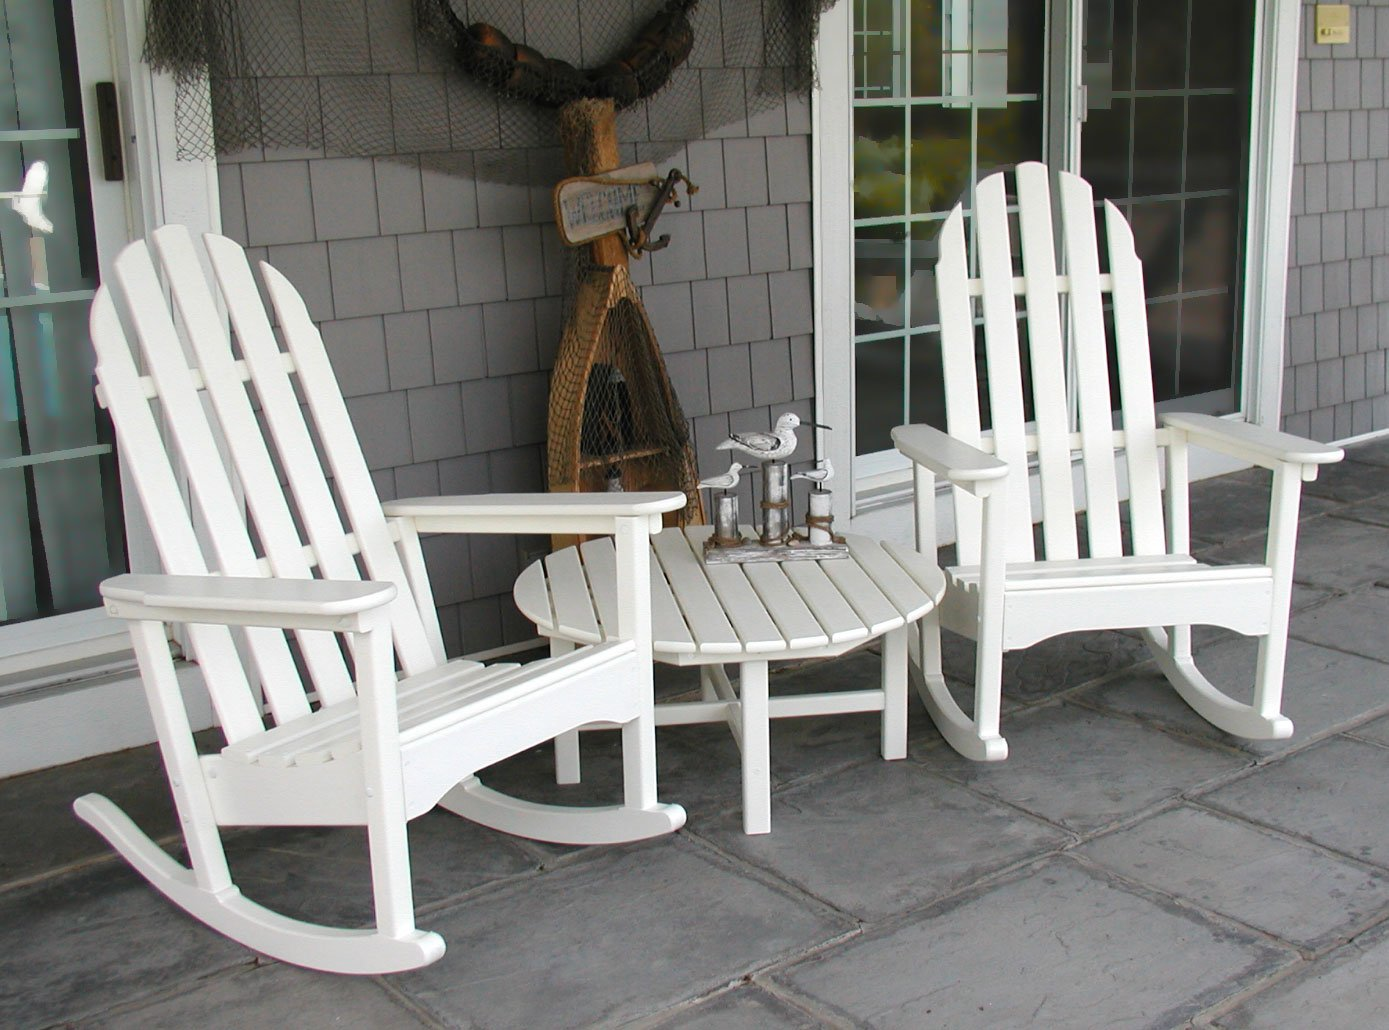 Amazon.com : POLYWOOD ADRC 1WH Classic Adirondack Rocker, White : Patio Rocking  Chairs : Garden U0026 Outdoor